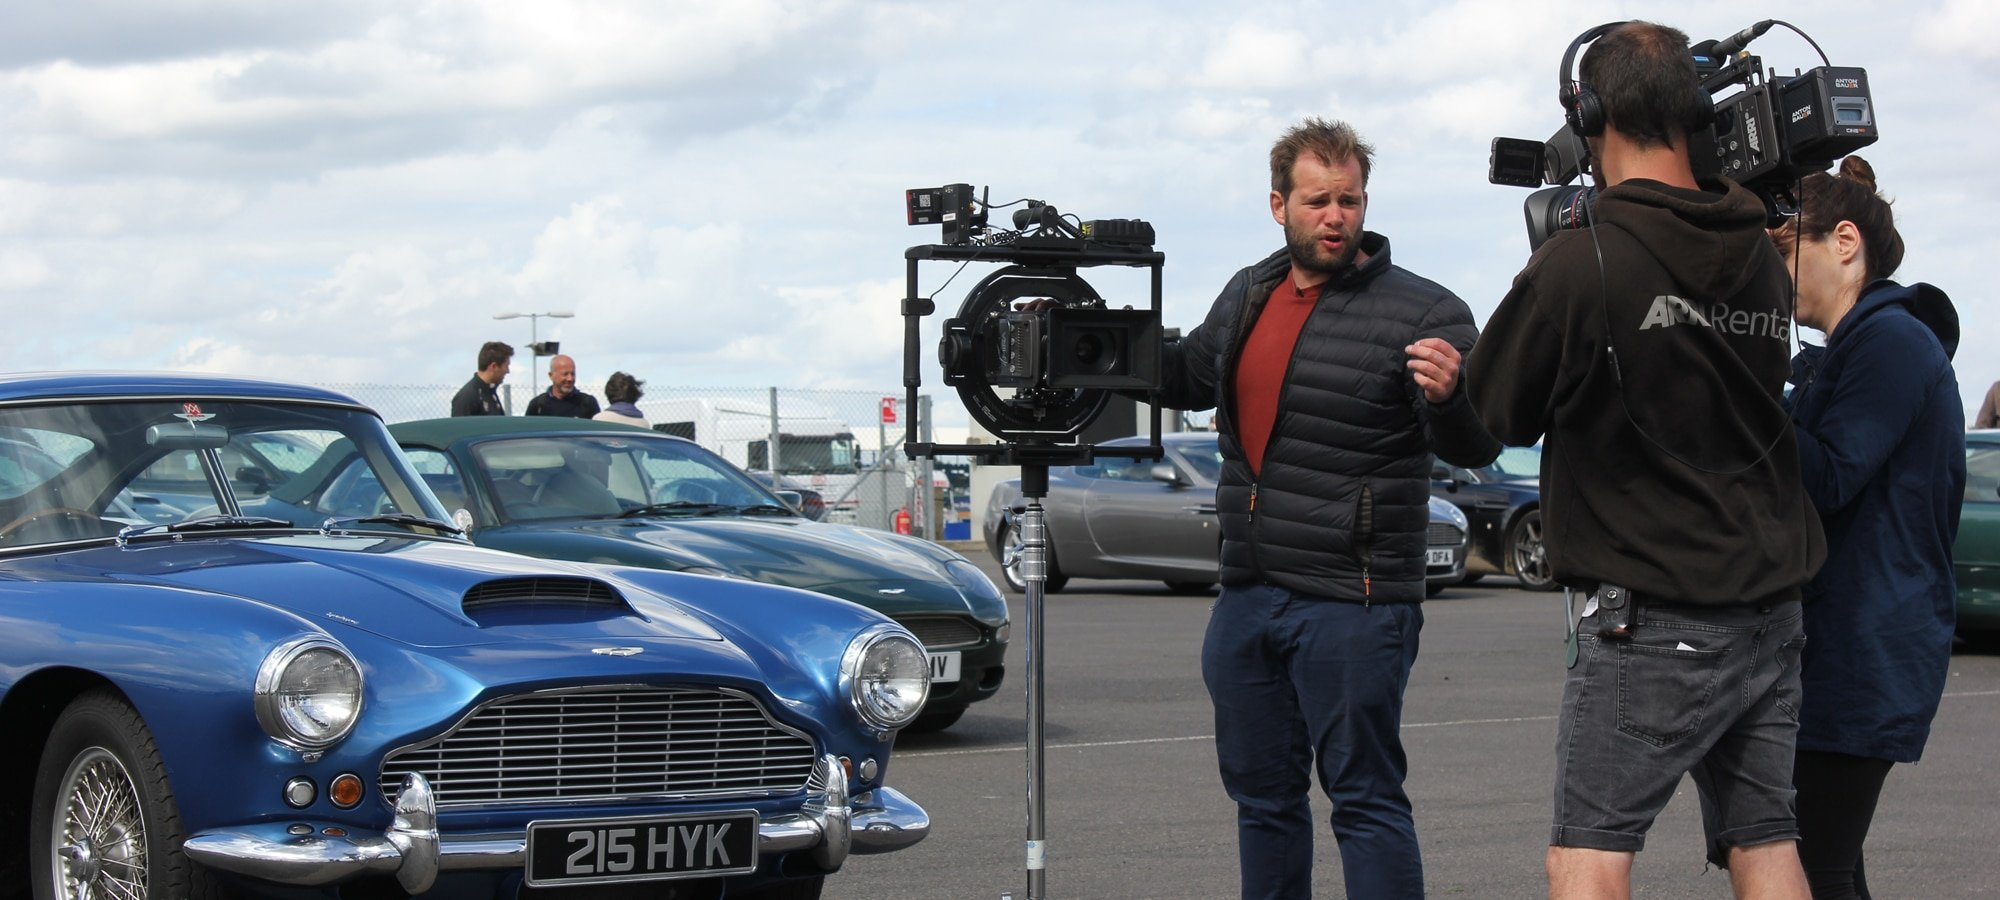 Test shoot with the ARRI AMIRA at the Silverstone Classic